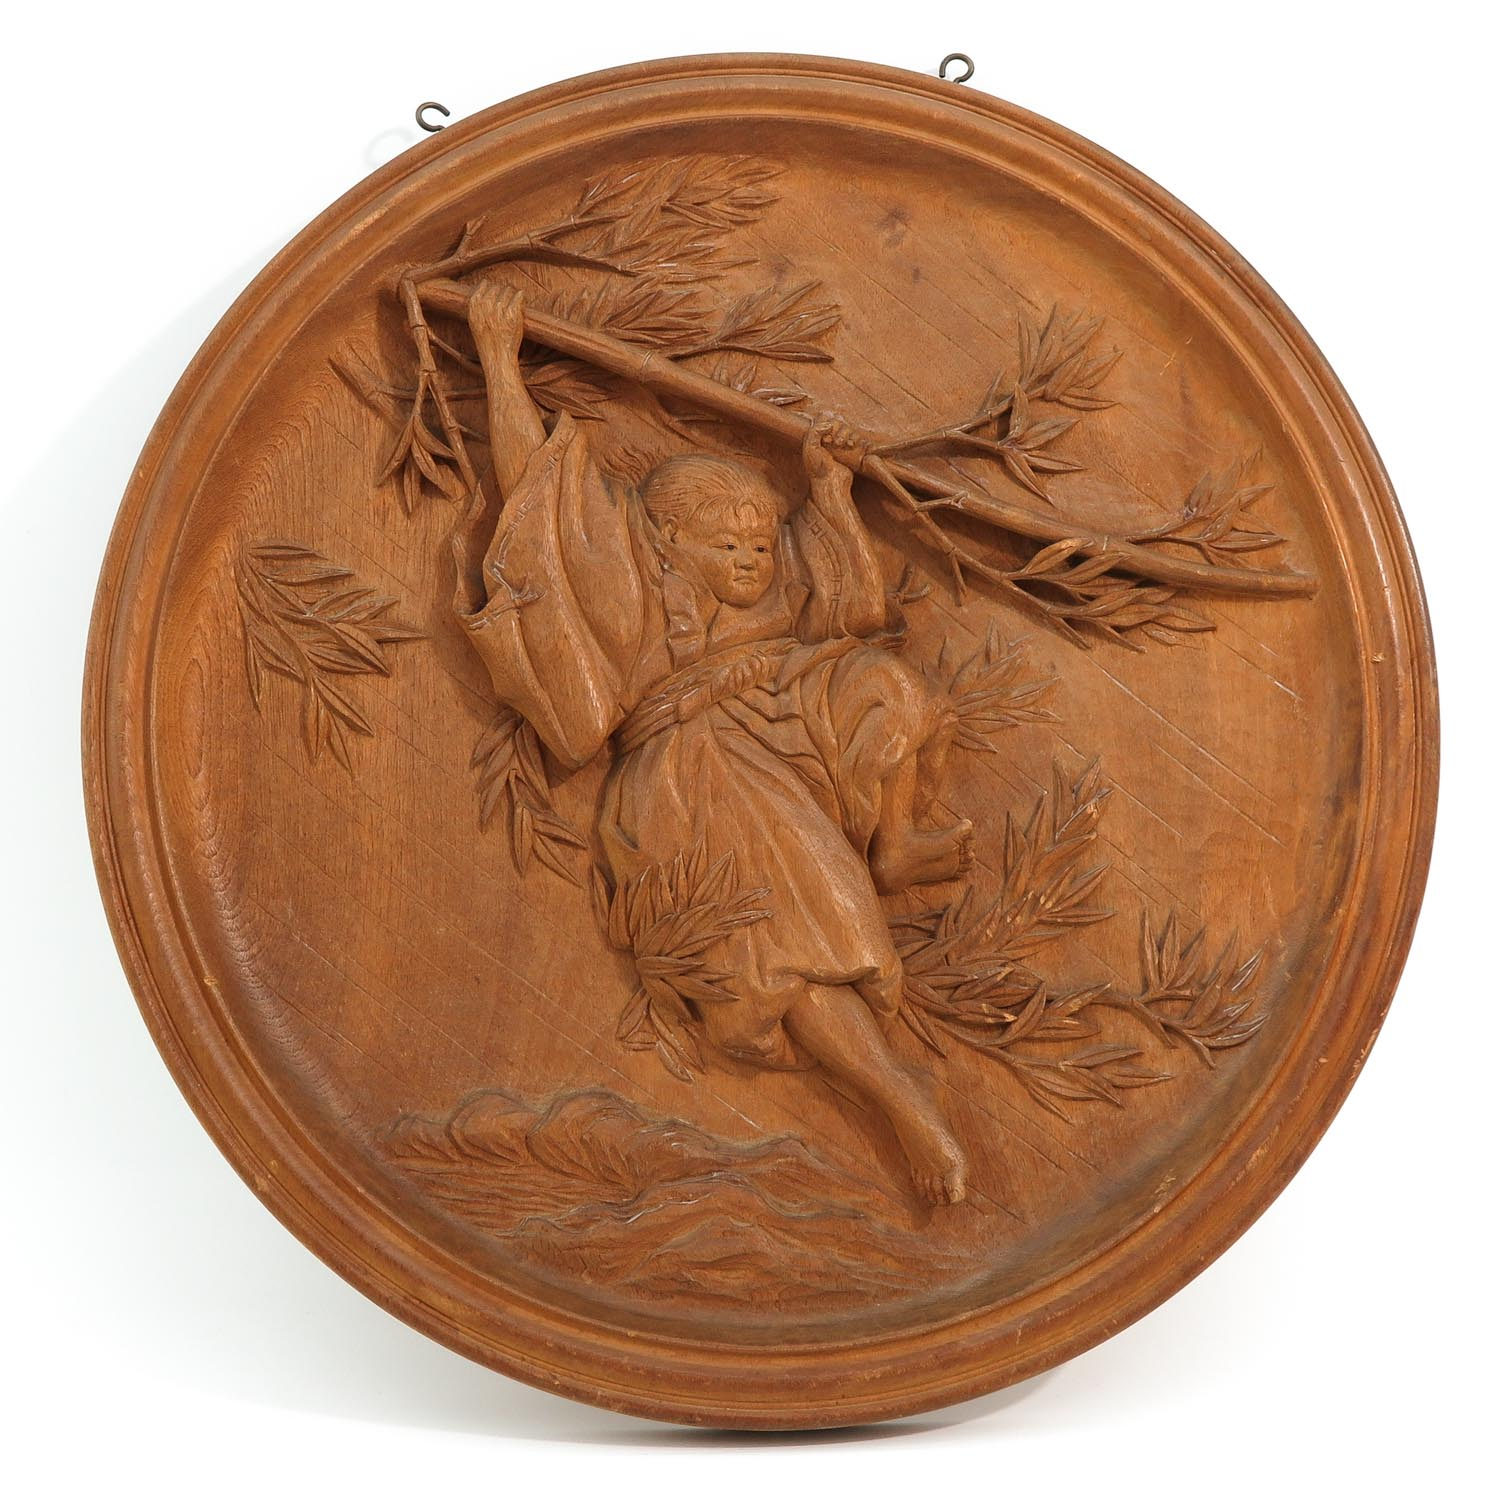 A Round Carved Wood Panel